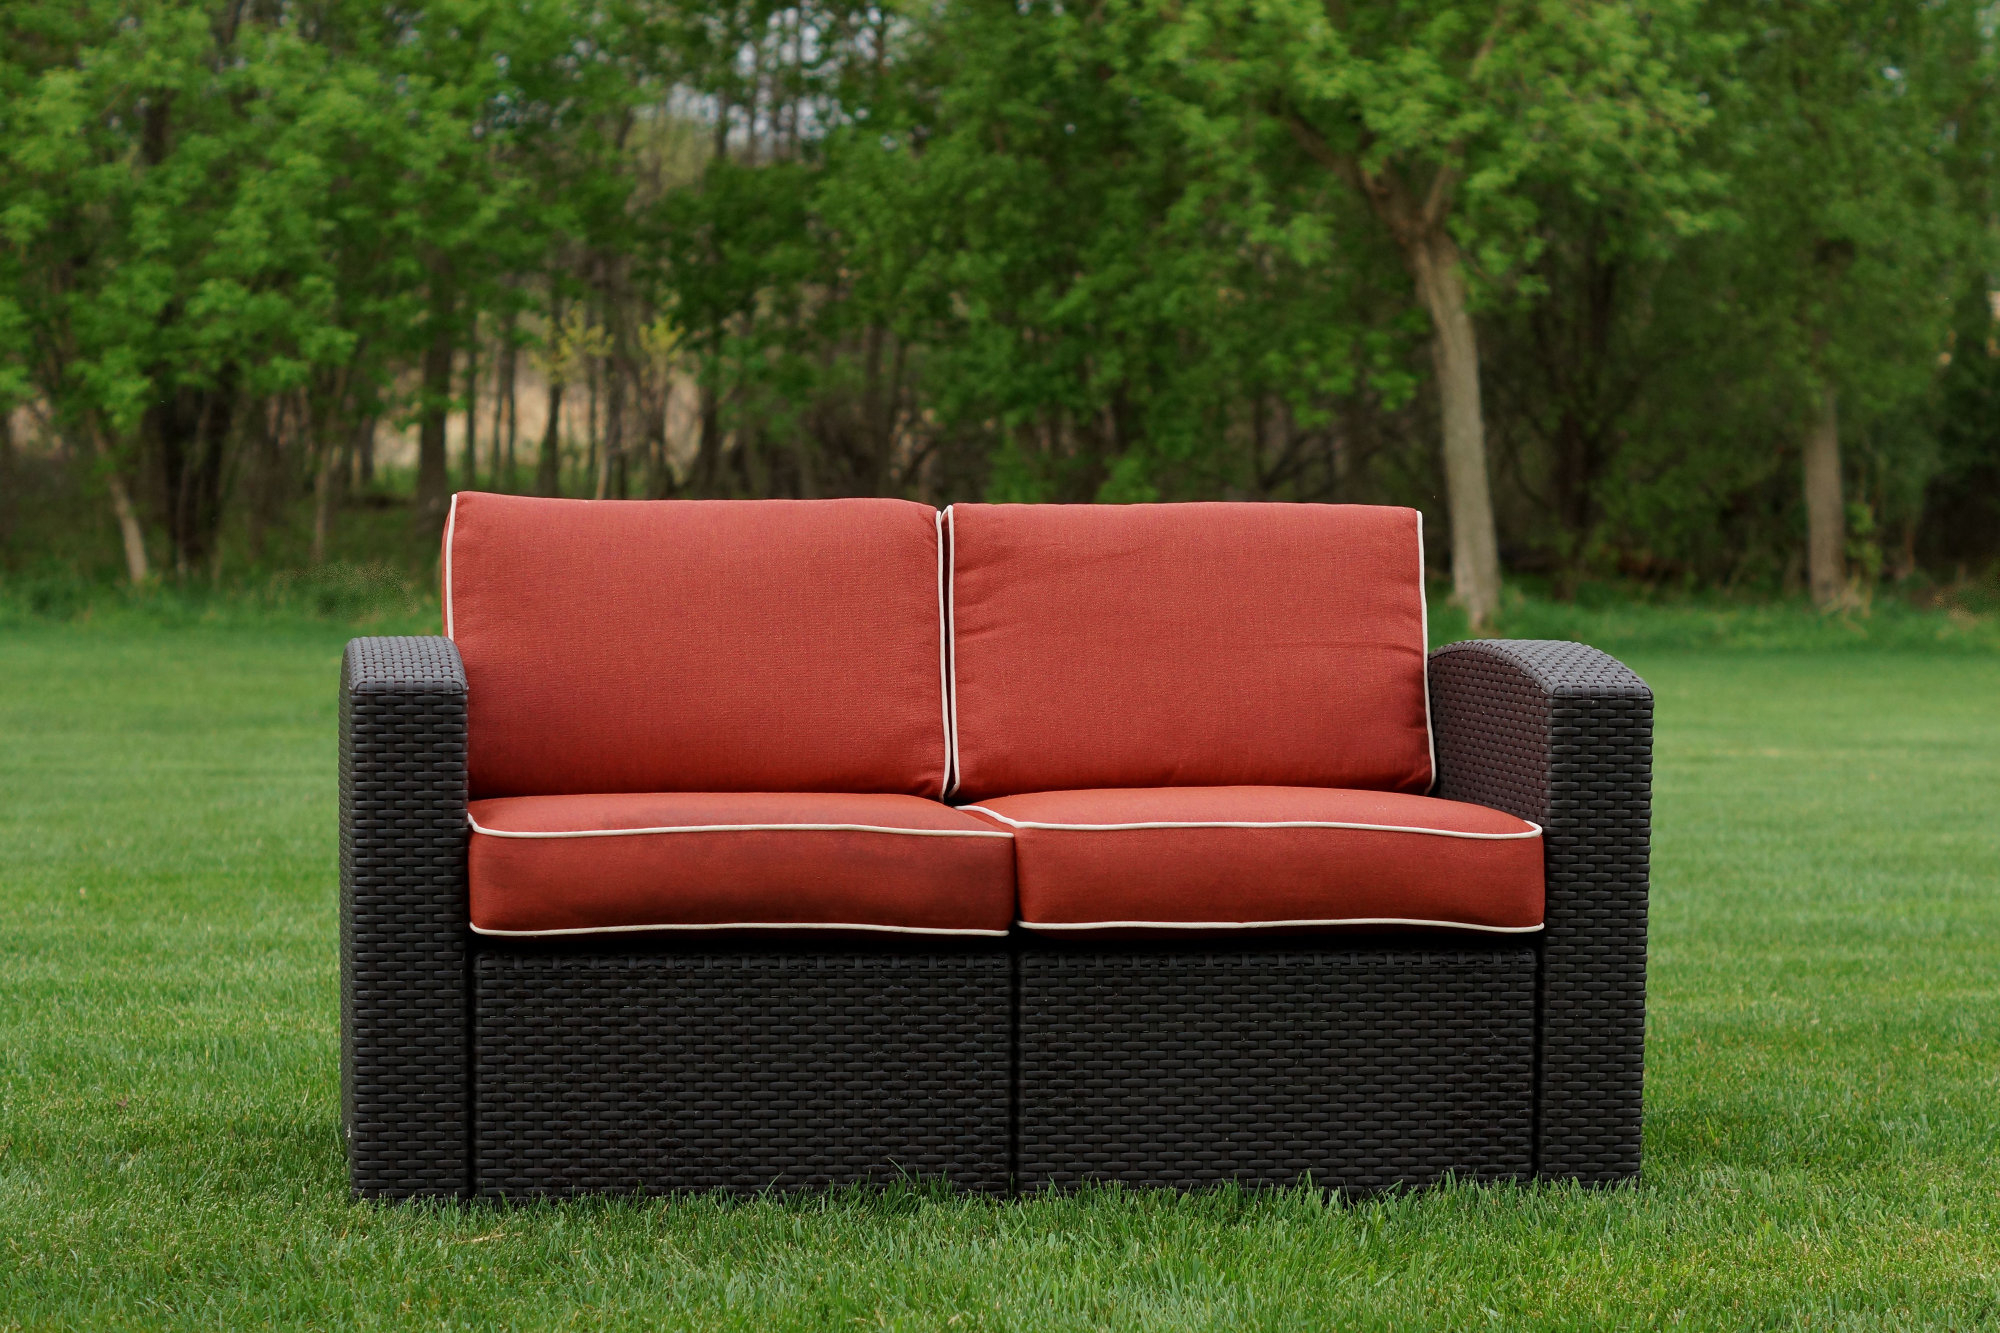 Mendelson Loveseats With Cushion With 2019 Loggins Loveseat With Cushions (View 13 of 20)